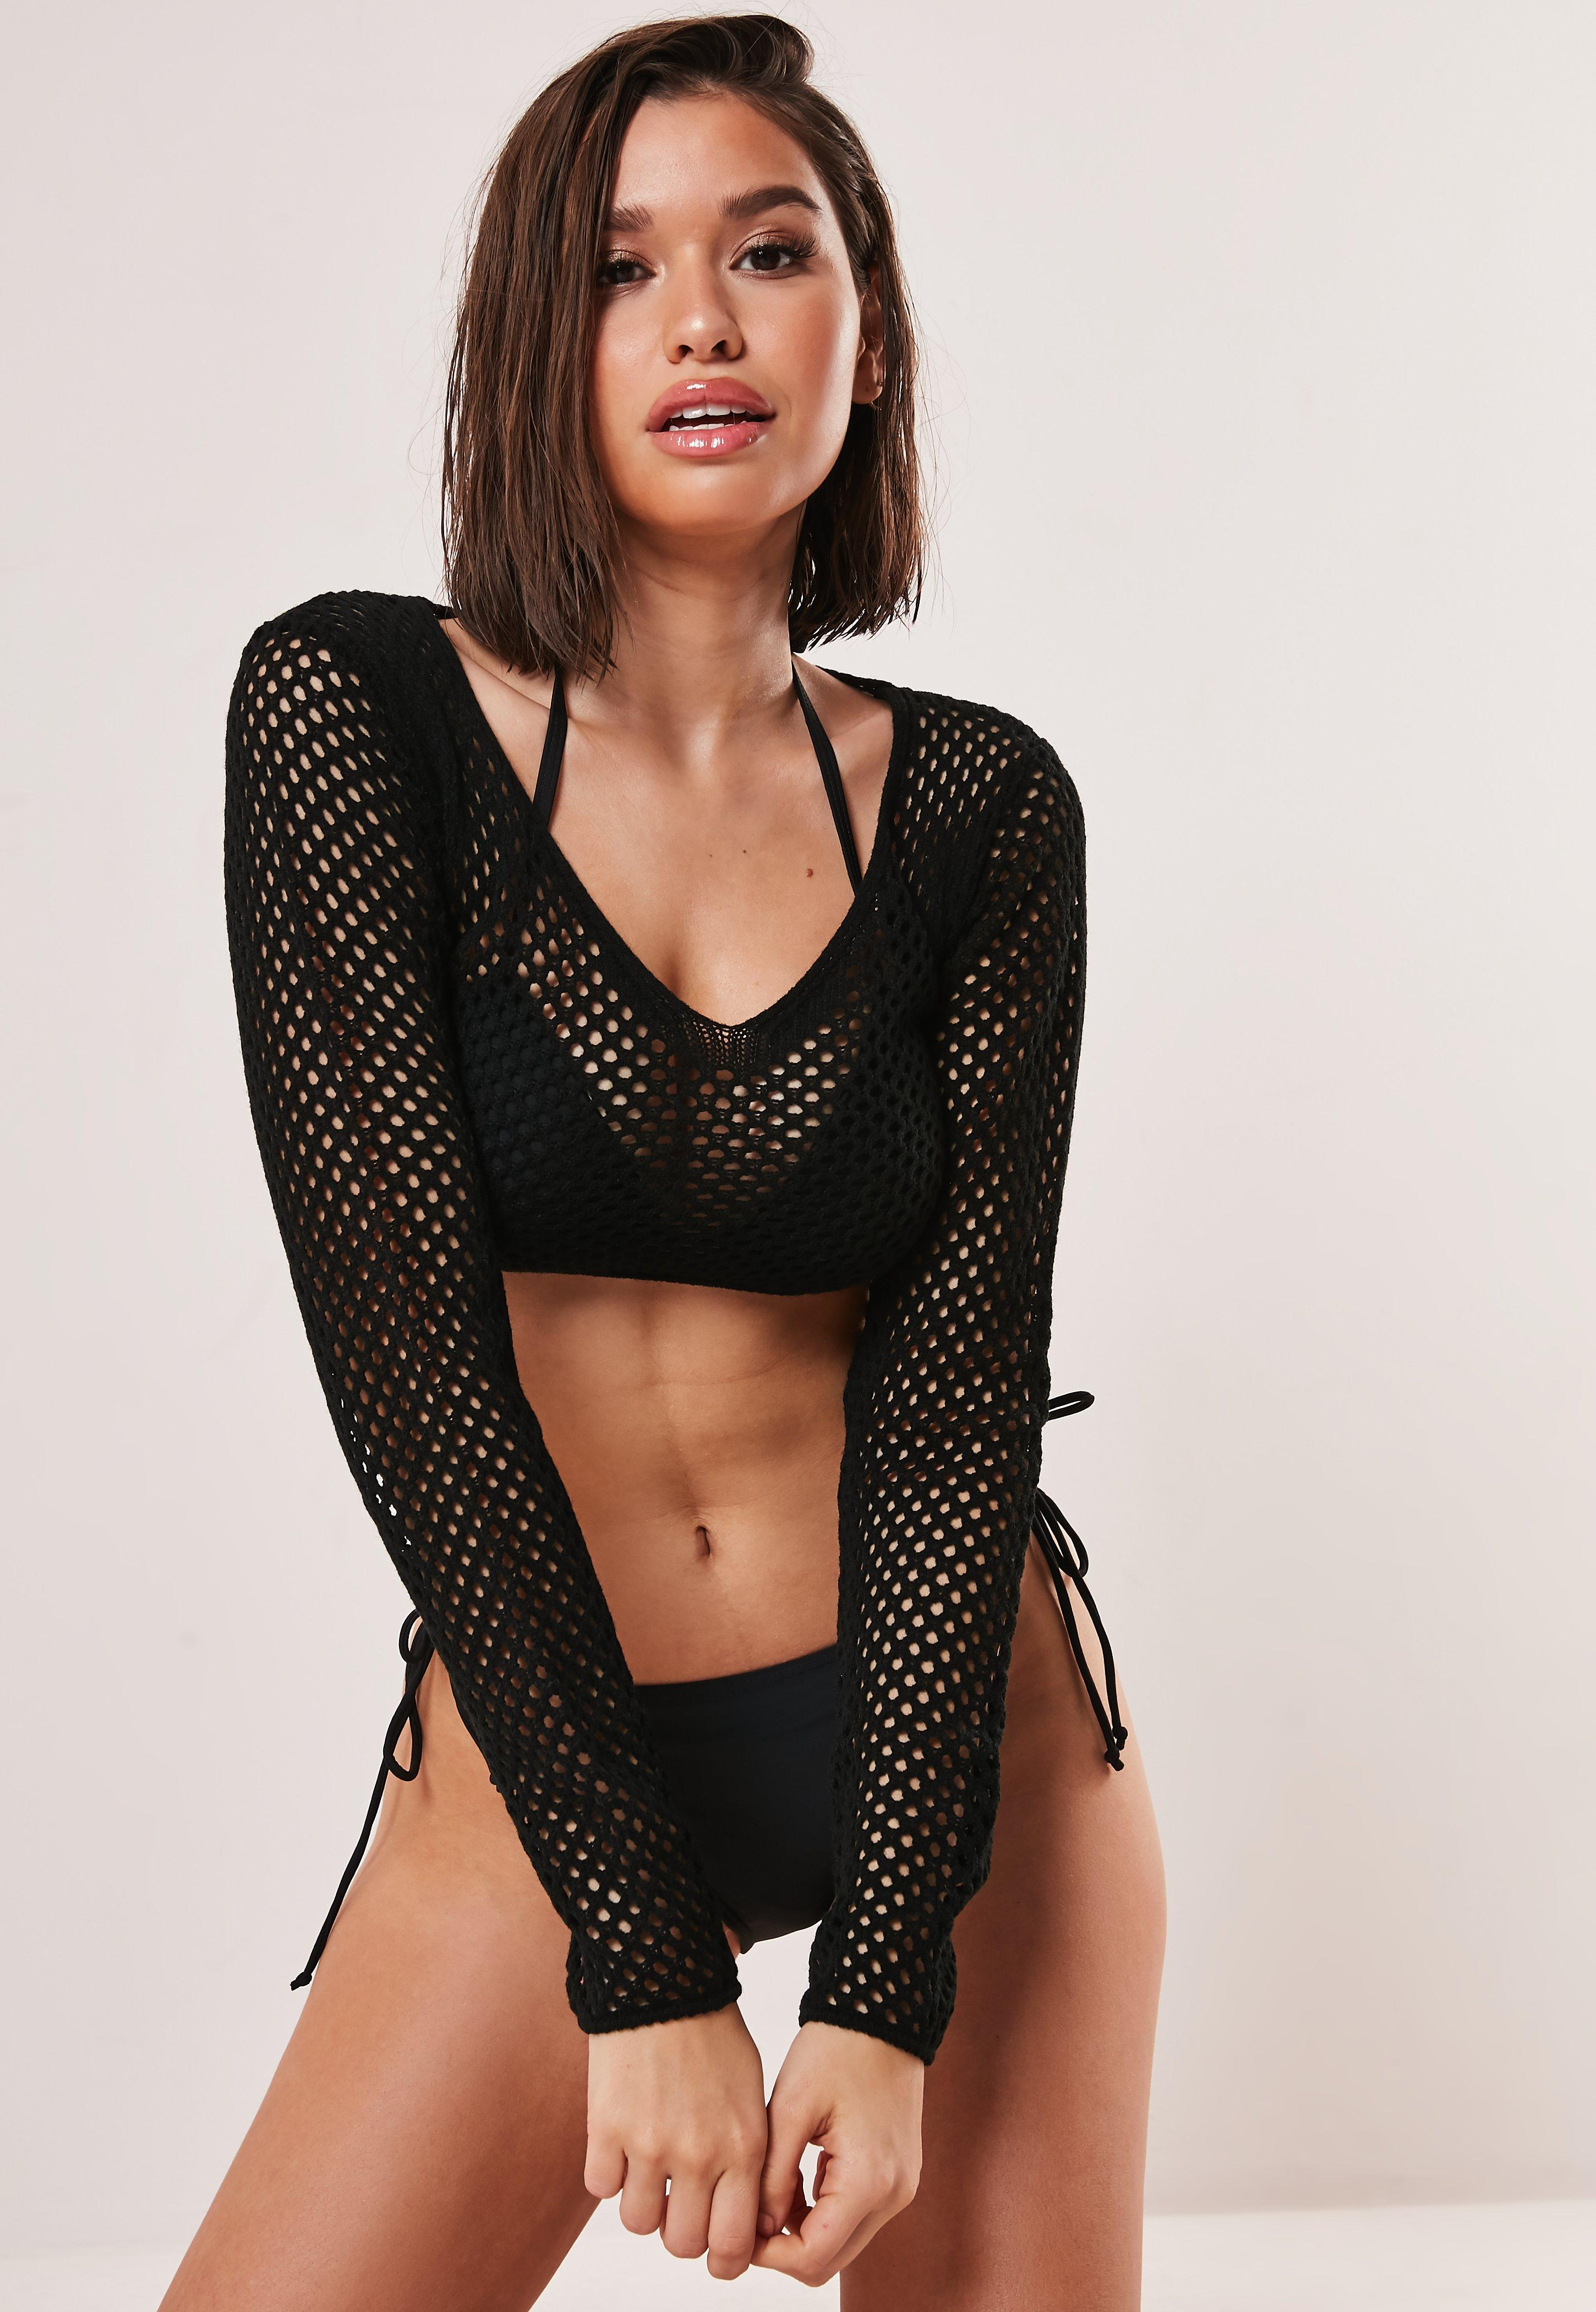 826d0a638a354 Mesh Tops   Fishnet & Sheer Tops - Missguided